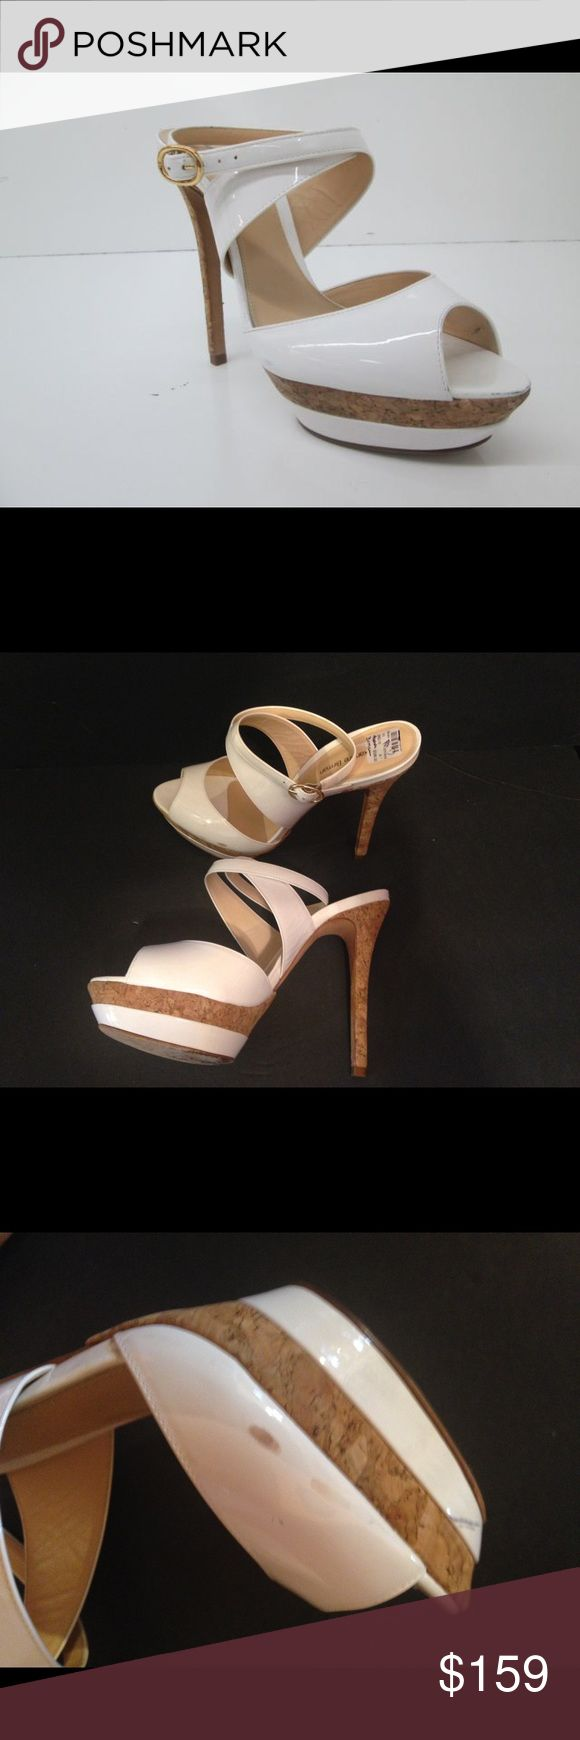 "Alexandre Birman white patent leather sandals Stunning white patent leather cork heels 5""3/4 heels. Has a few stains during traveling. Shows in pictures. White and gold platform alexandre birman Shoes Heels"